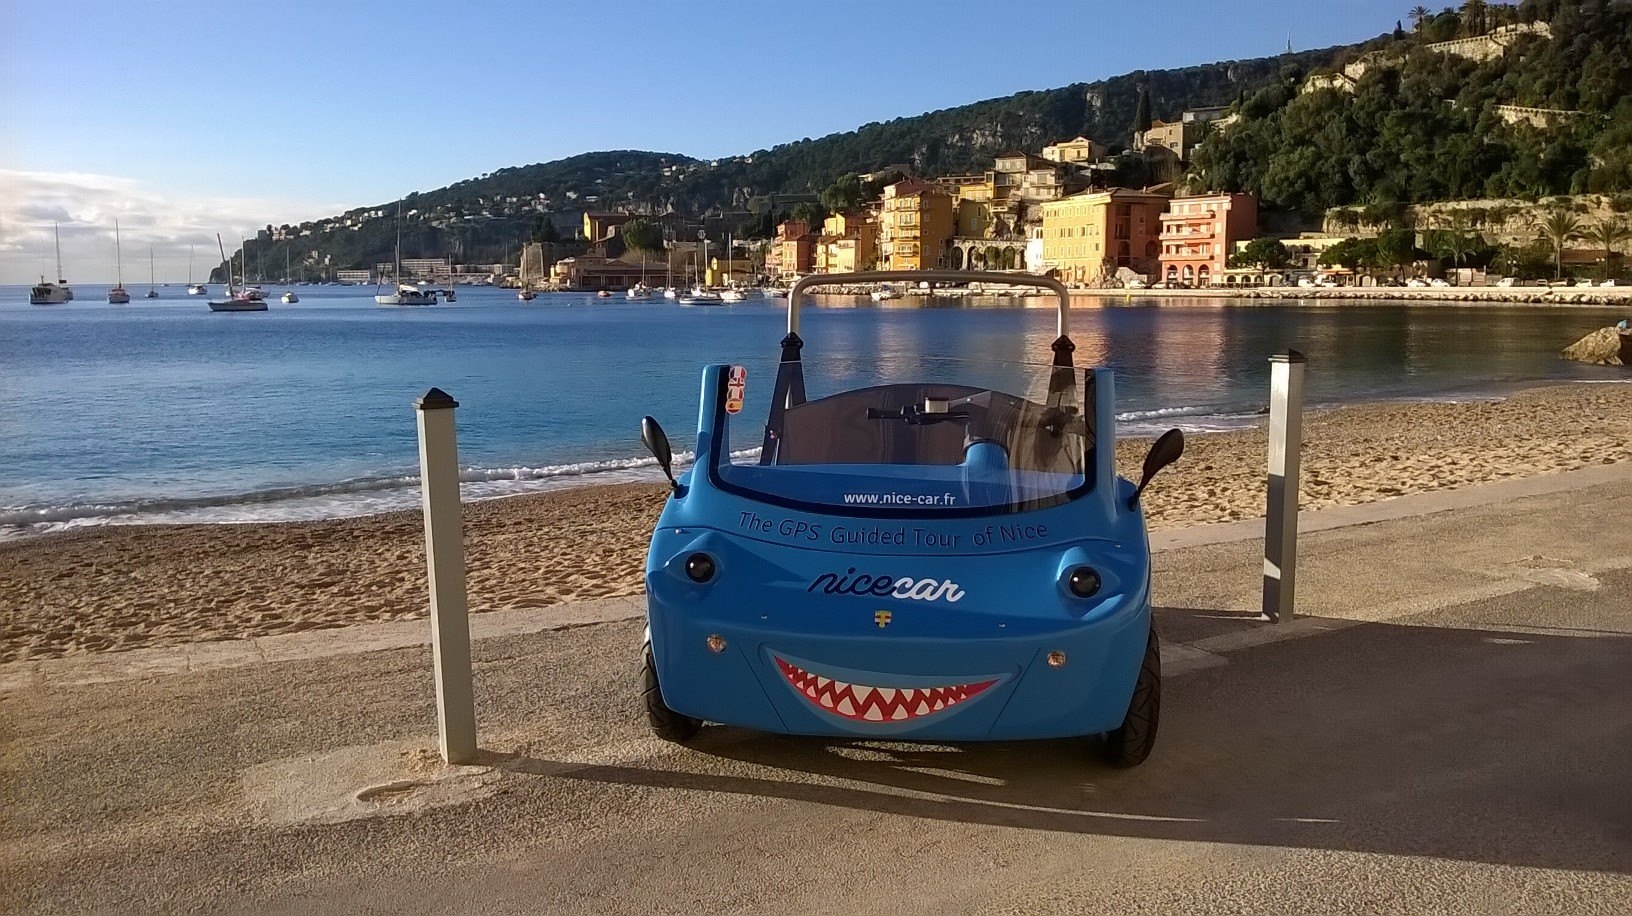 Nice Car Gps Guided Tour Of Nice Azur Vibes